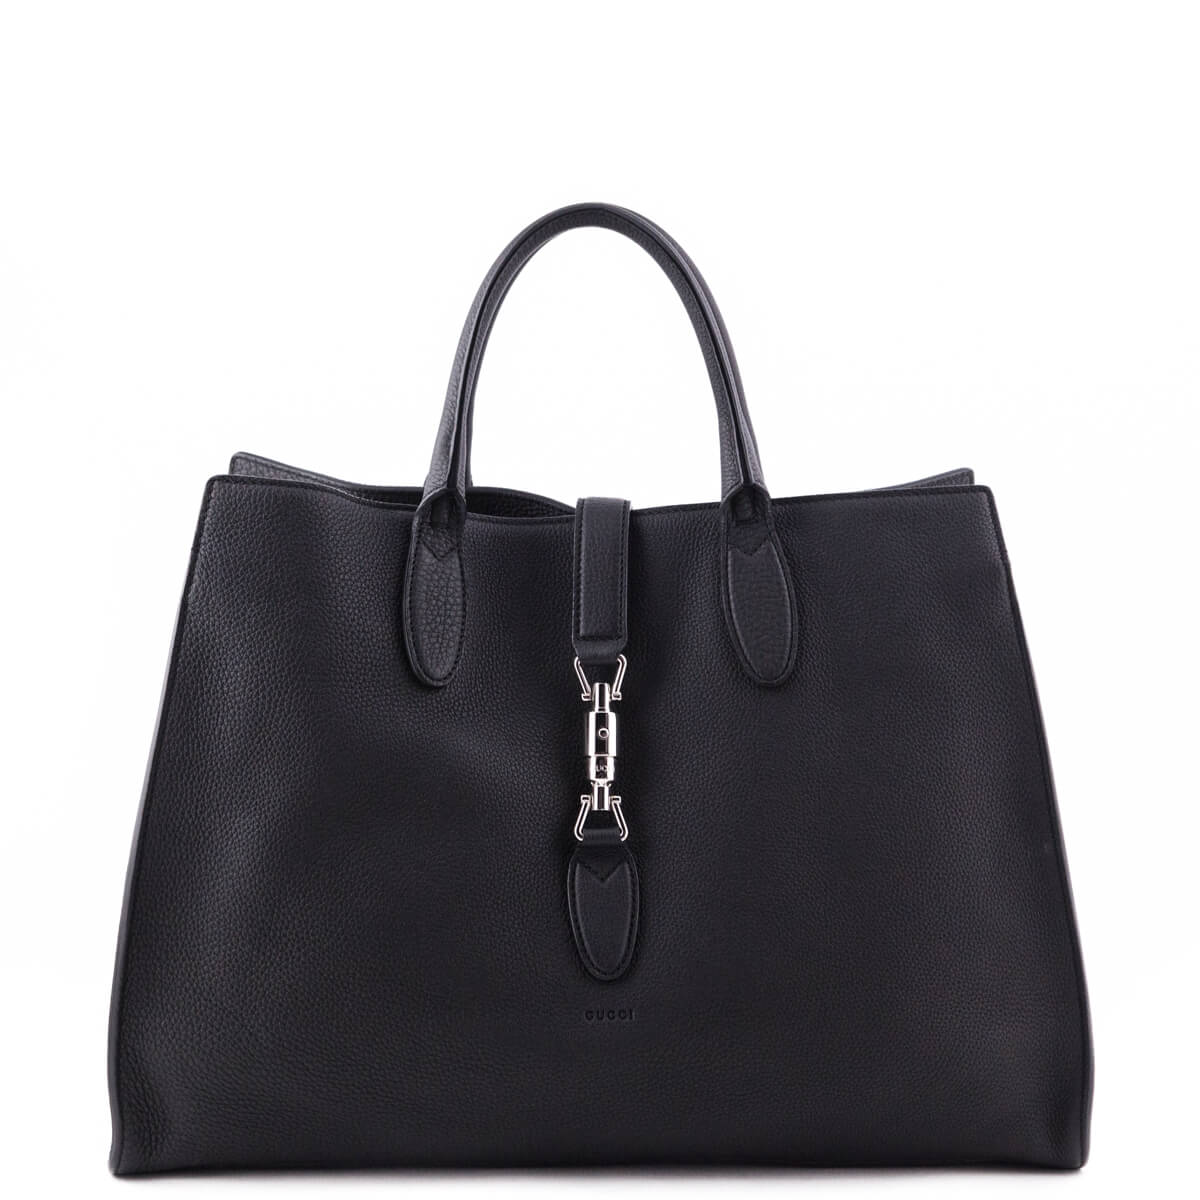 f2a094ec175a73 Gucci Black Soft Leather Large Jackie Top Handle Bag - LOVE that BAG -  Preowned Authentic ...